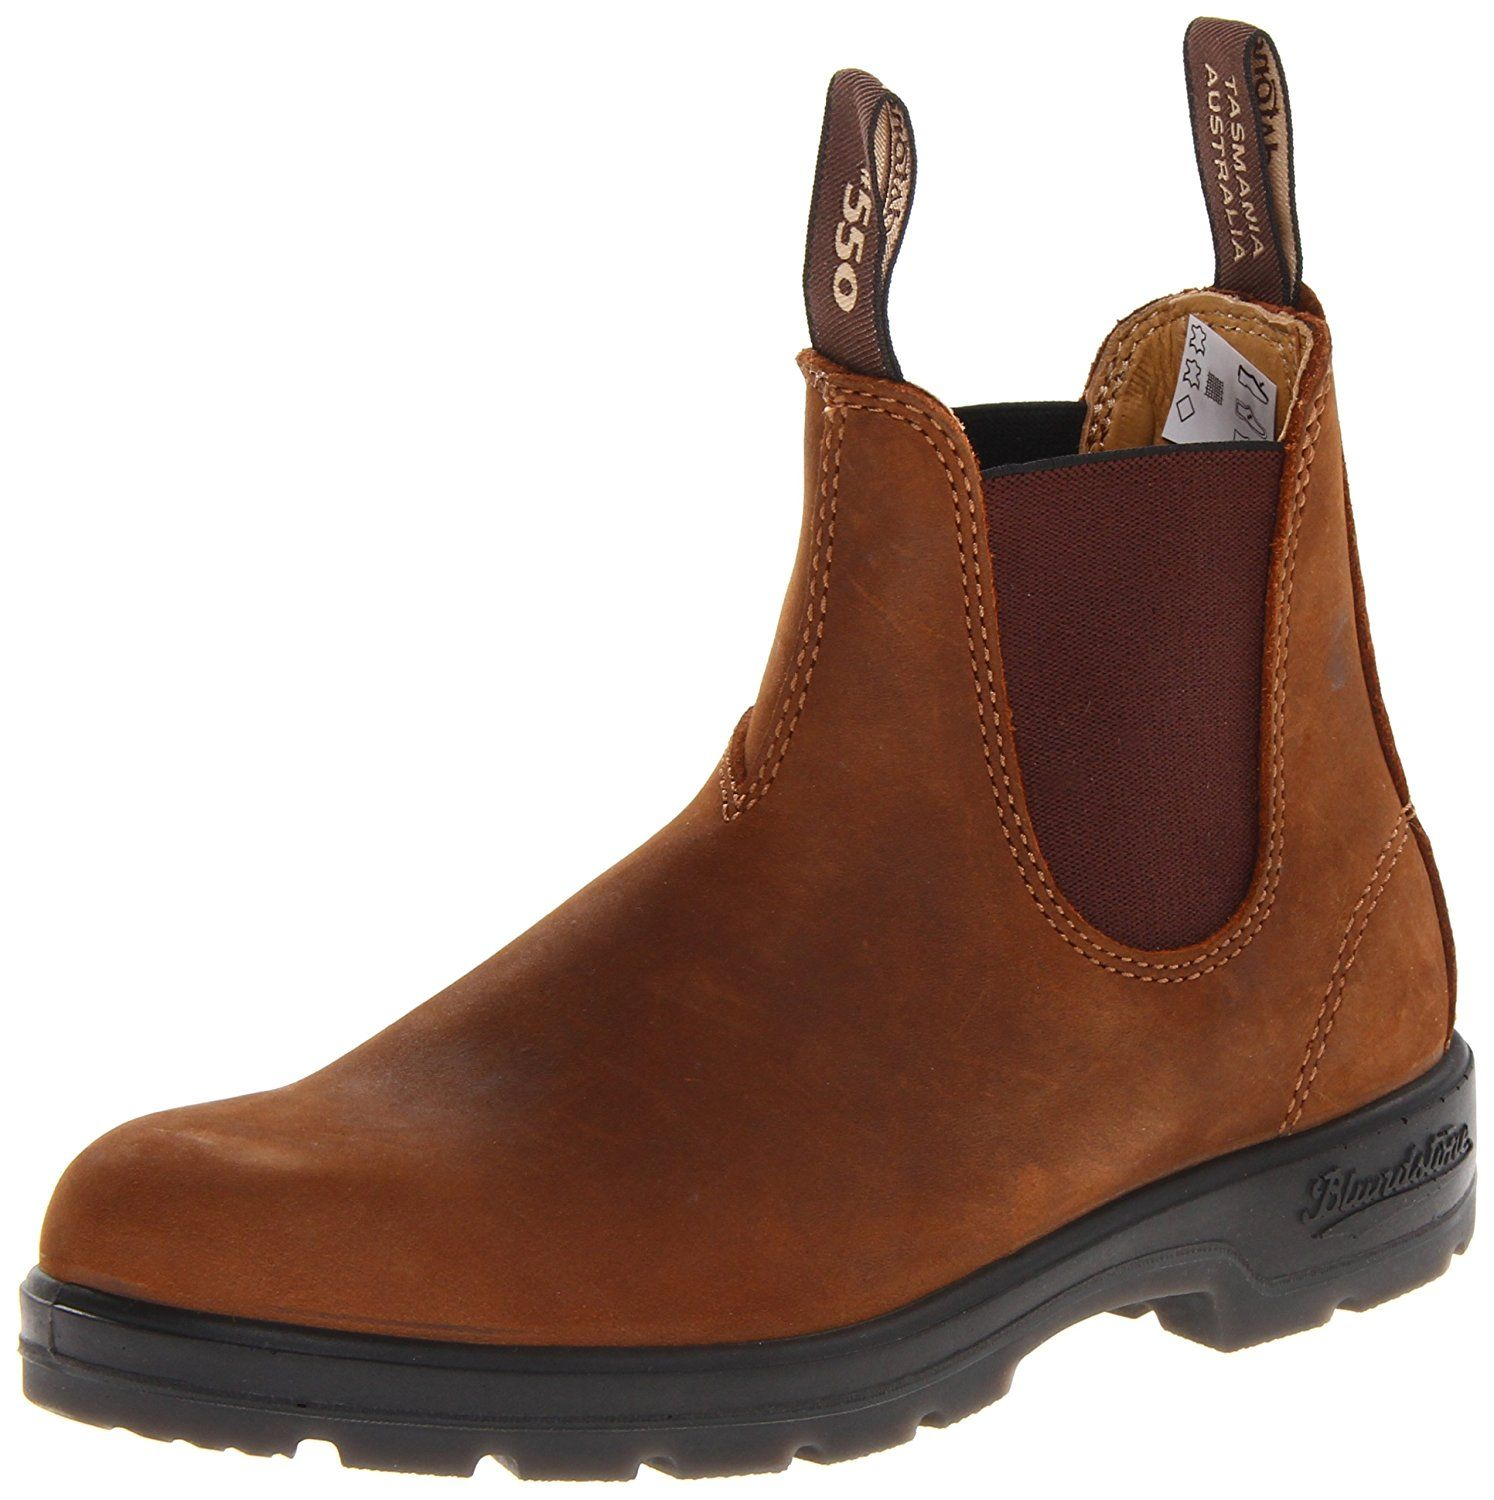 Blundstone Women's Blundstone 561 Crazy Horse Boot ** Find